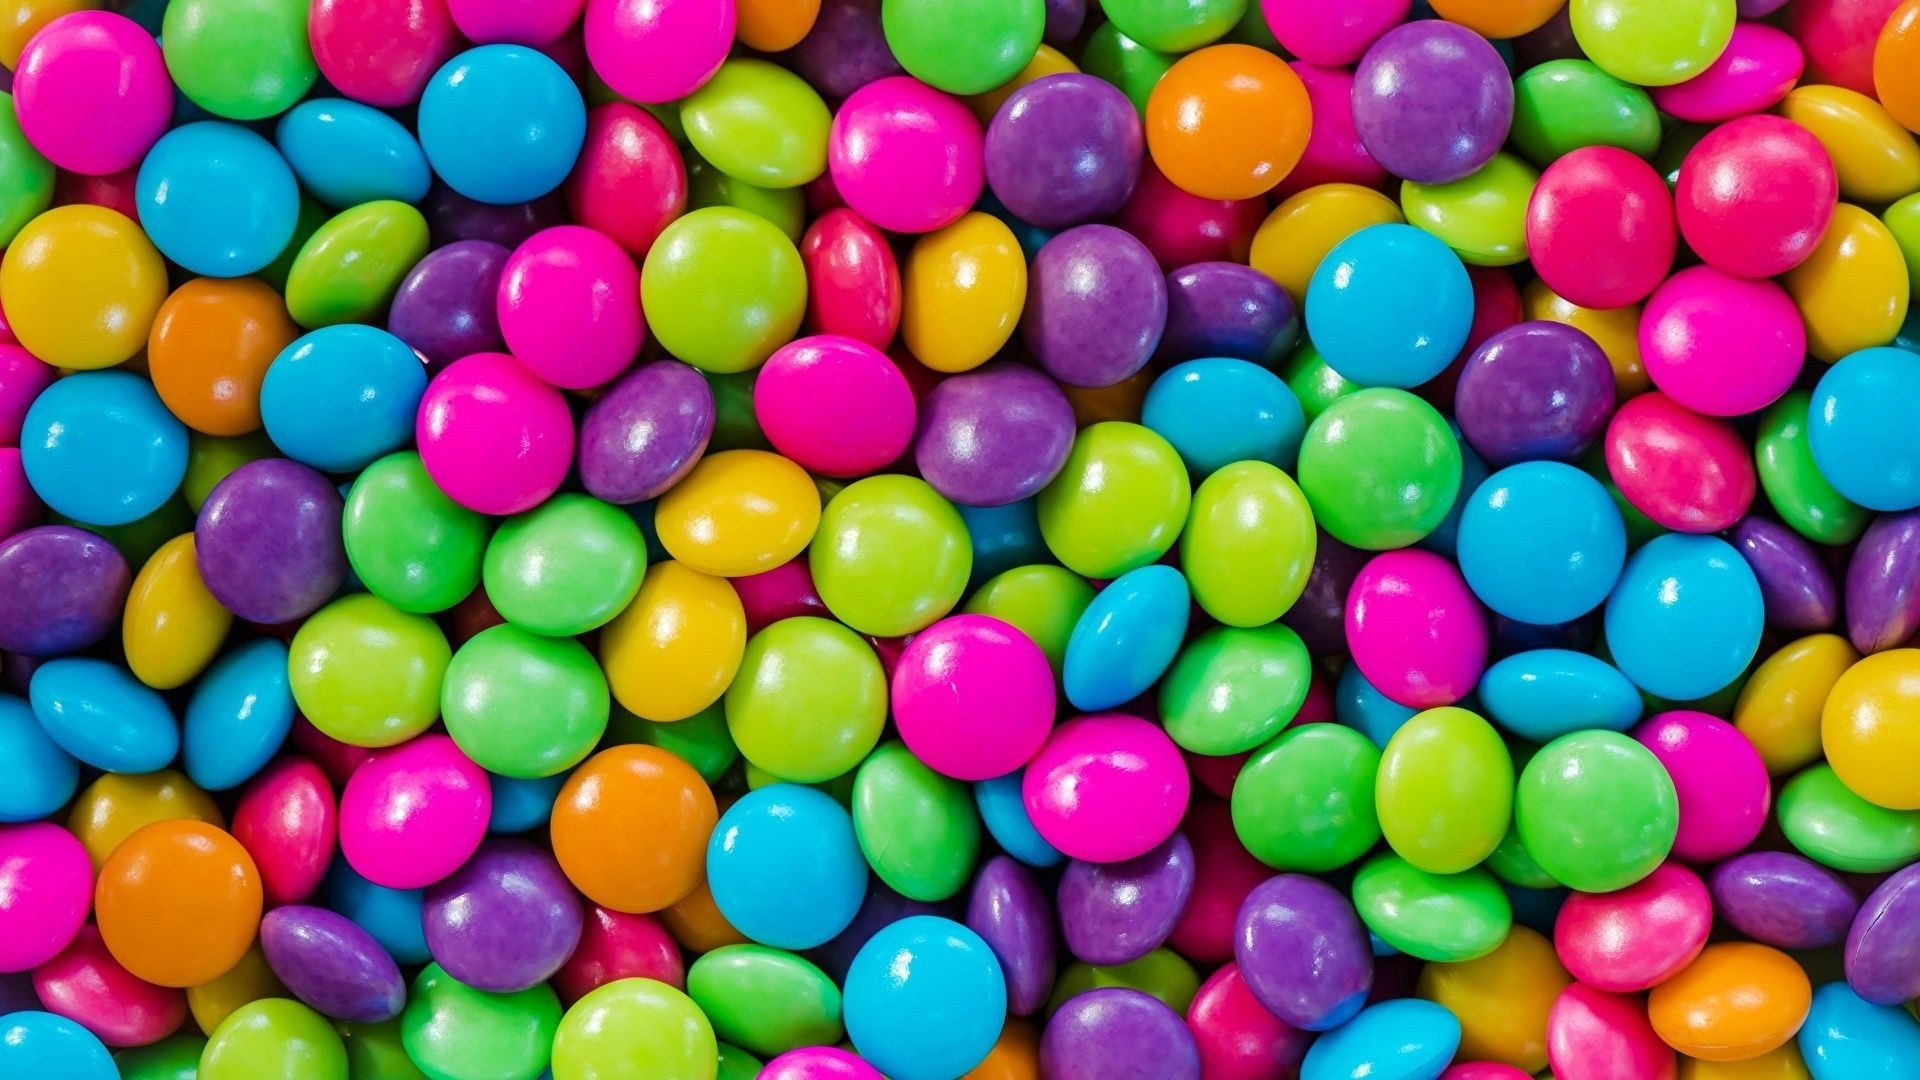 Skittles Wallpaper and Background